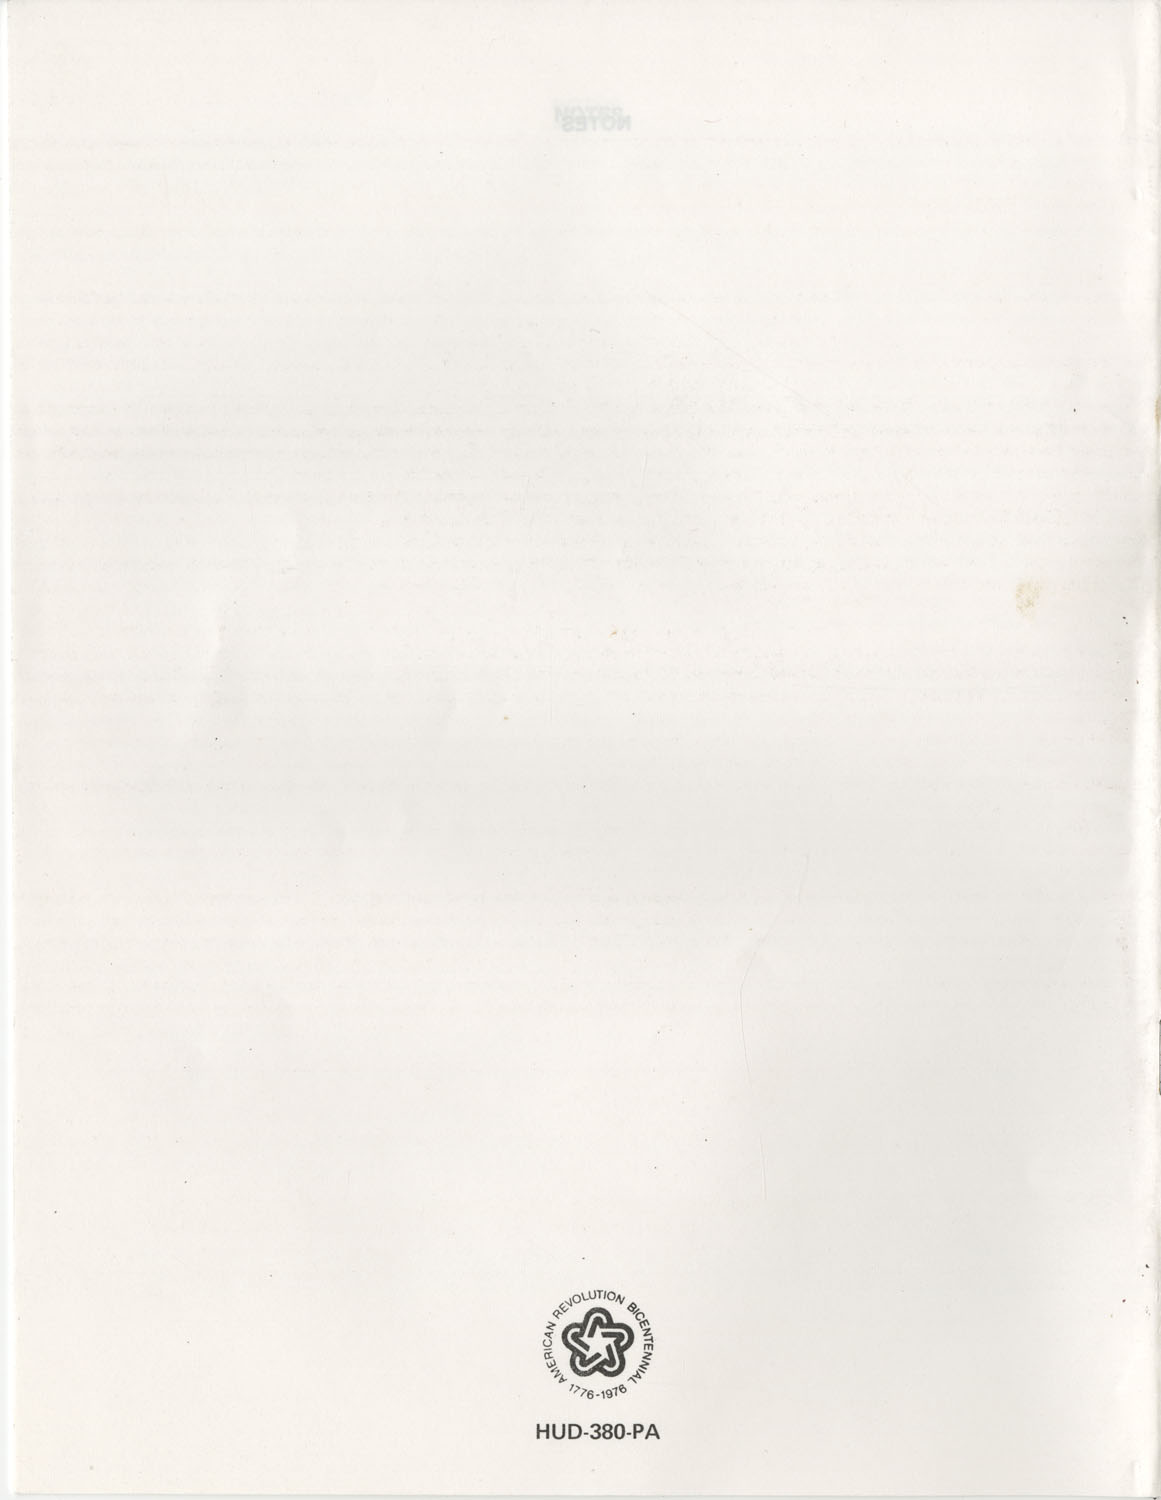 Summary of the Housing and Community Development Act of 1974, Back Cover